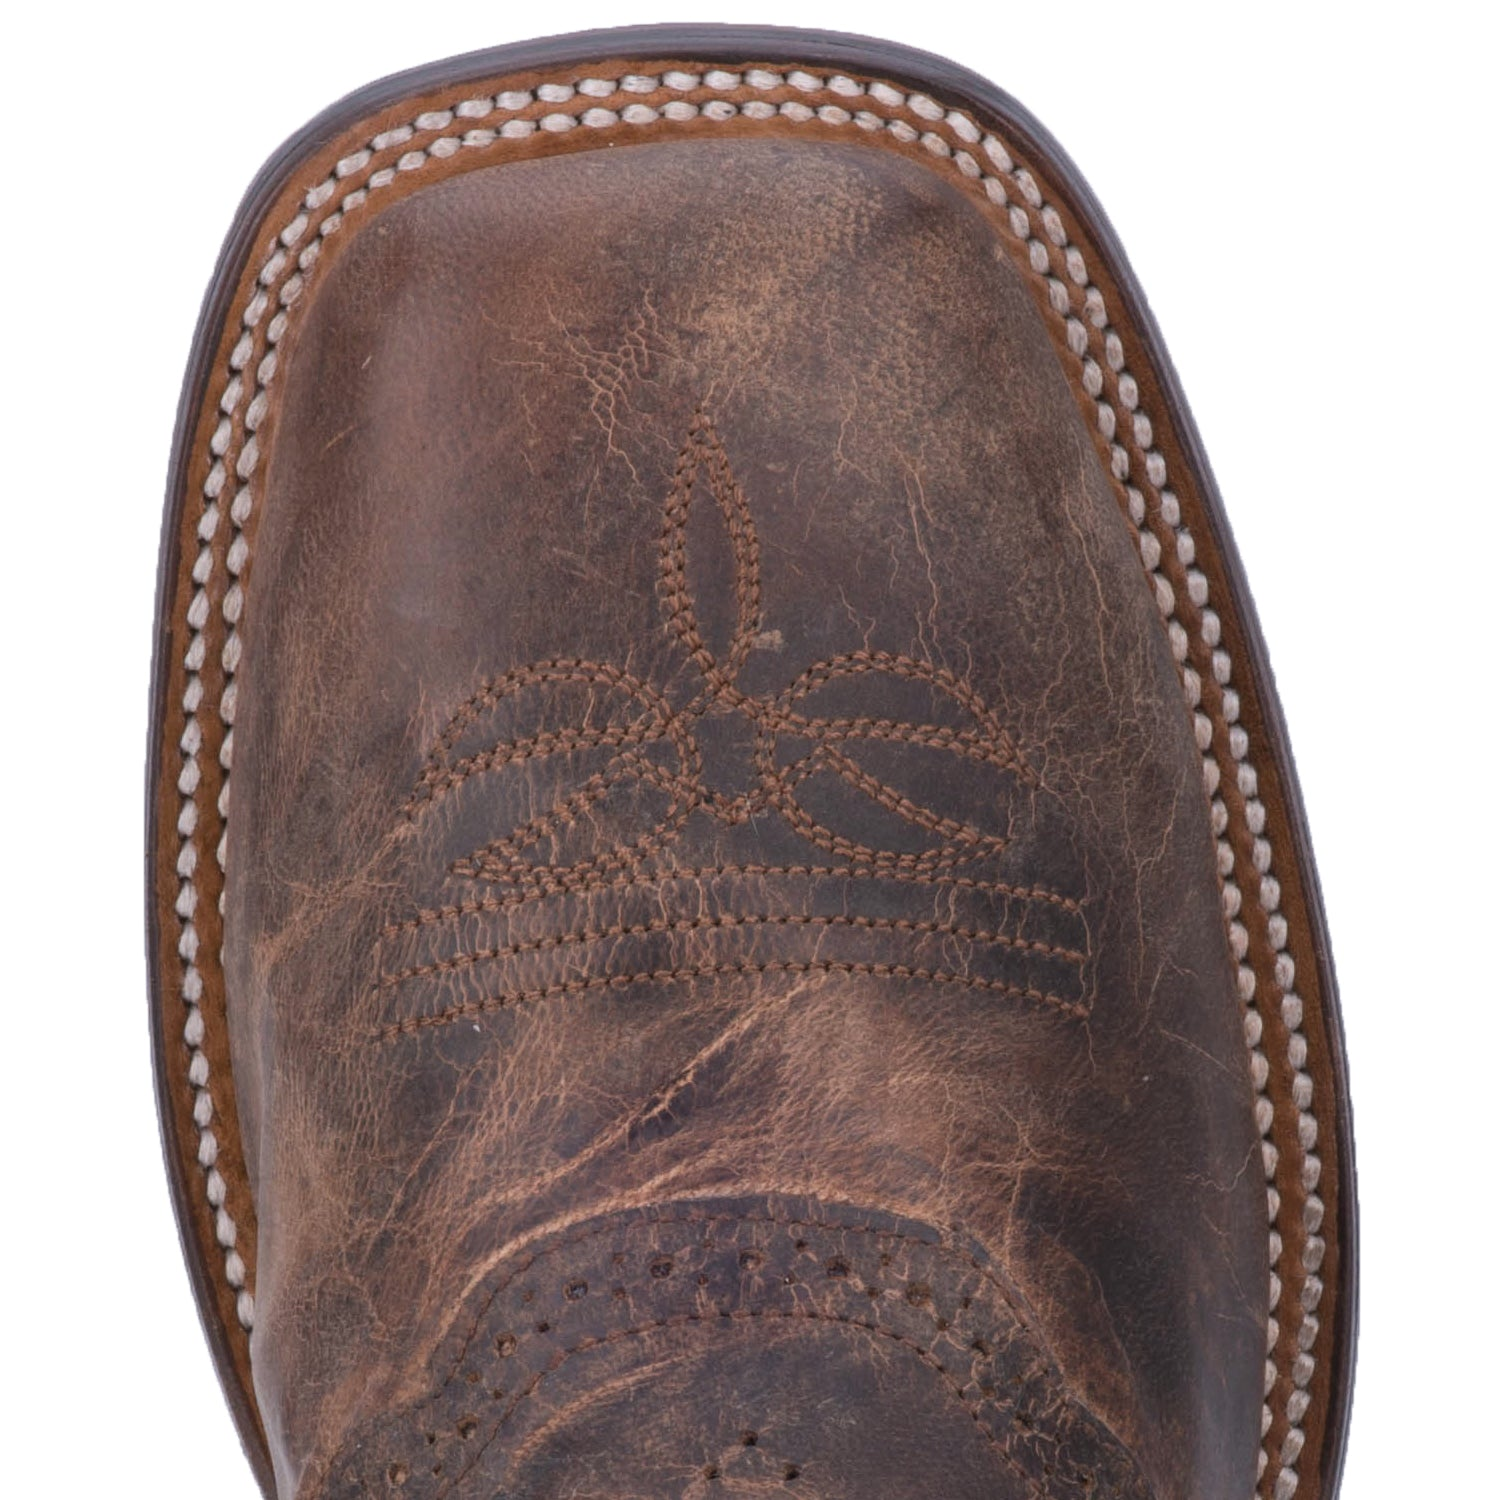 FRANKLIN LEATHER BOOT - Dan Post Boots